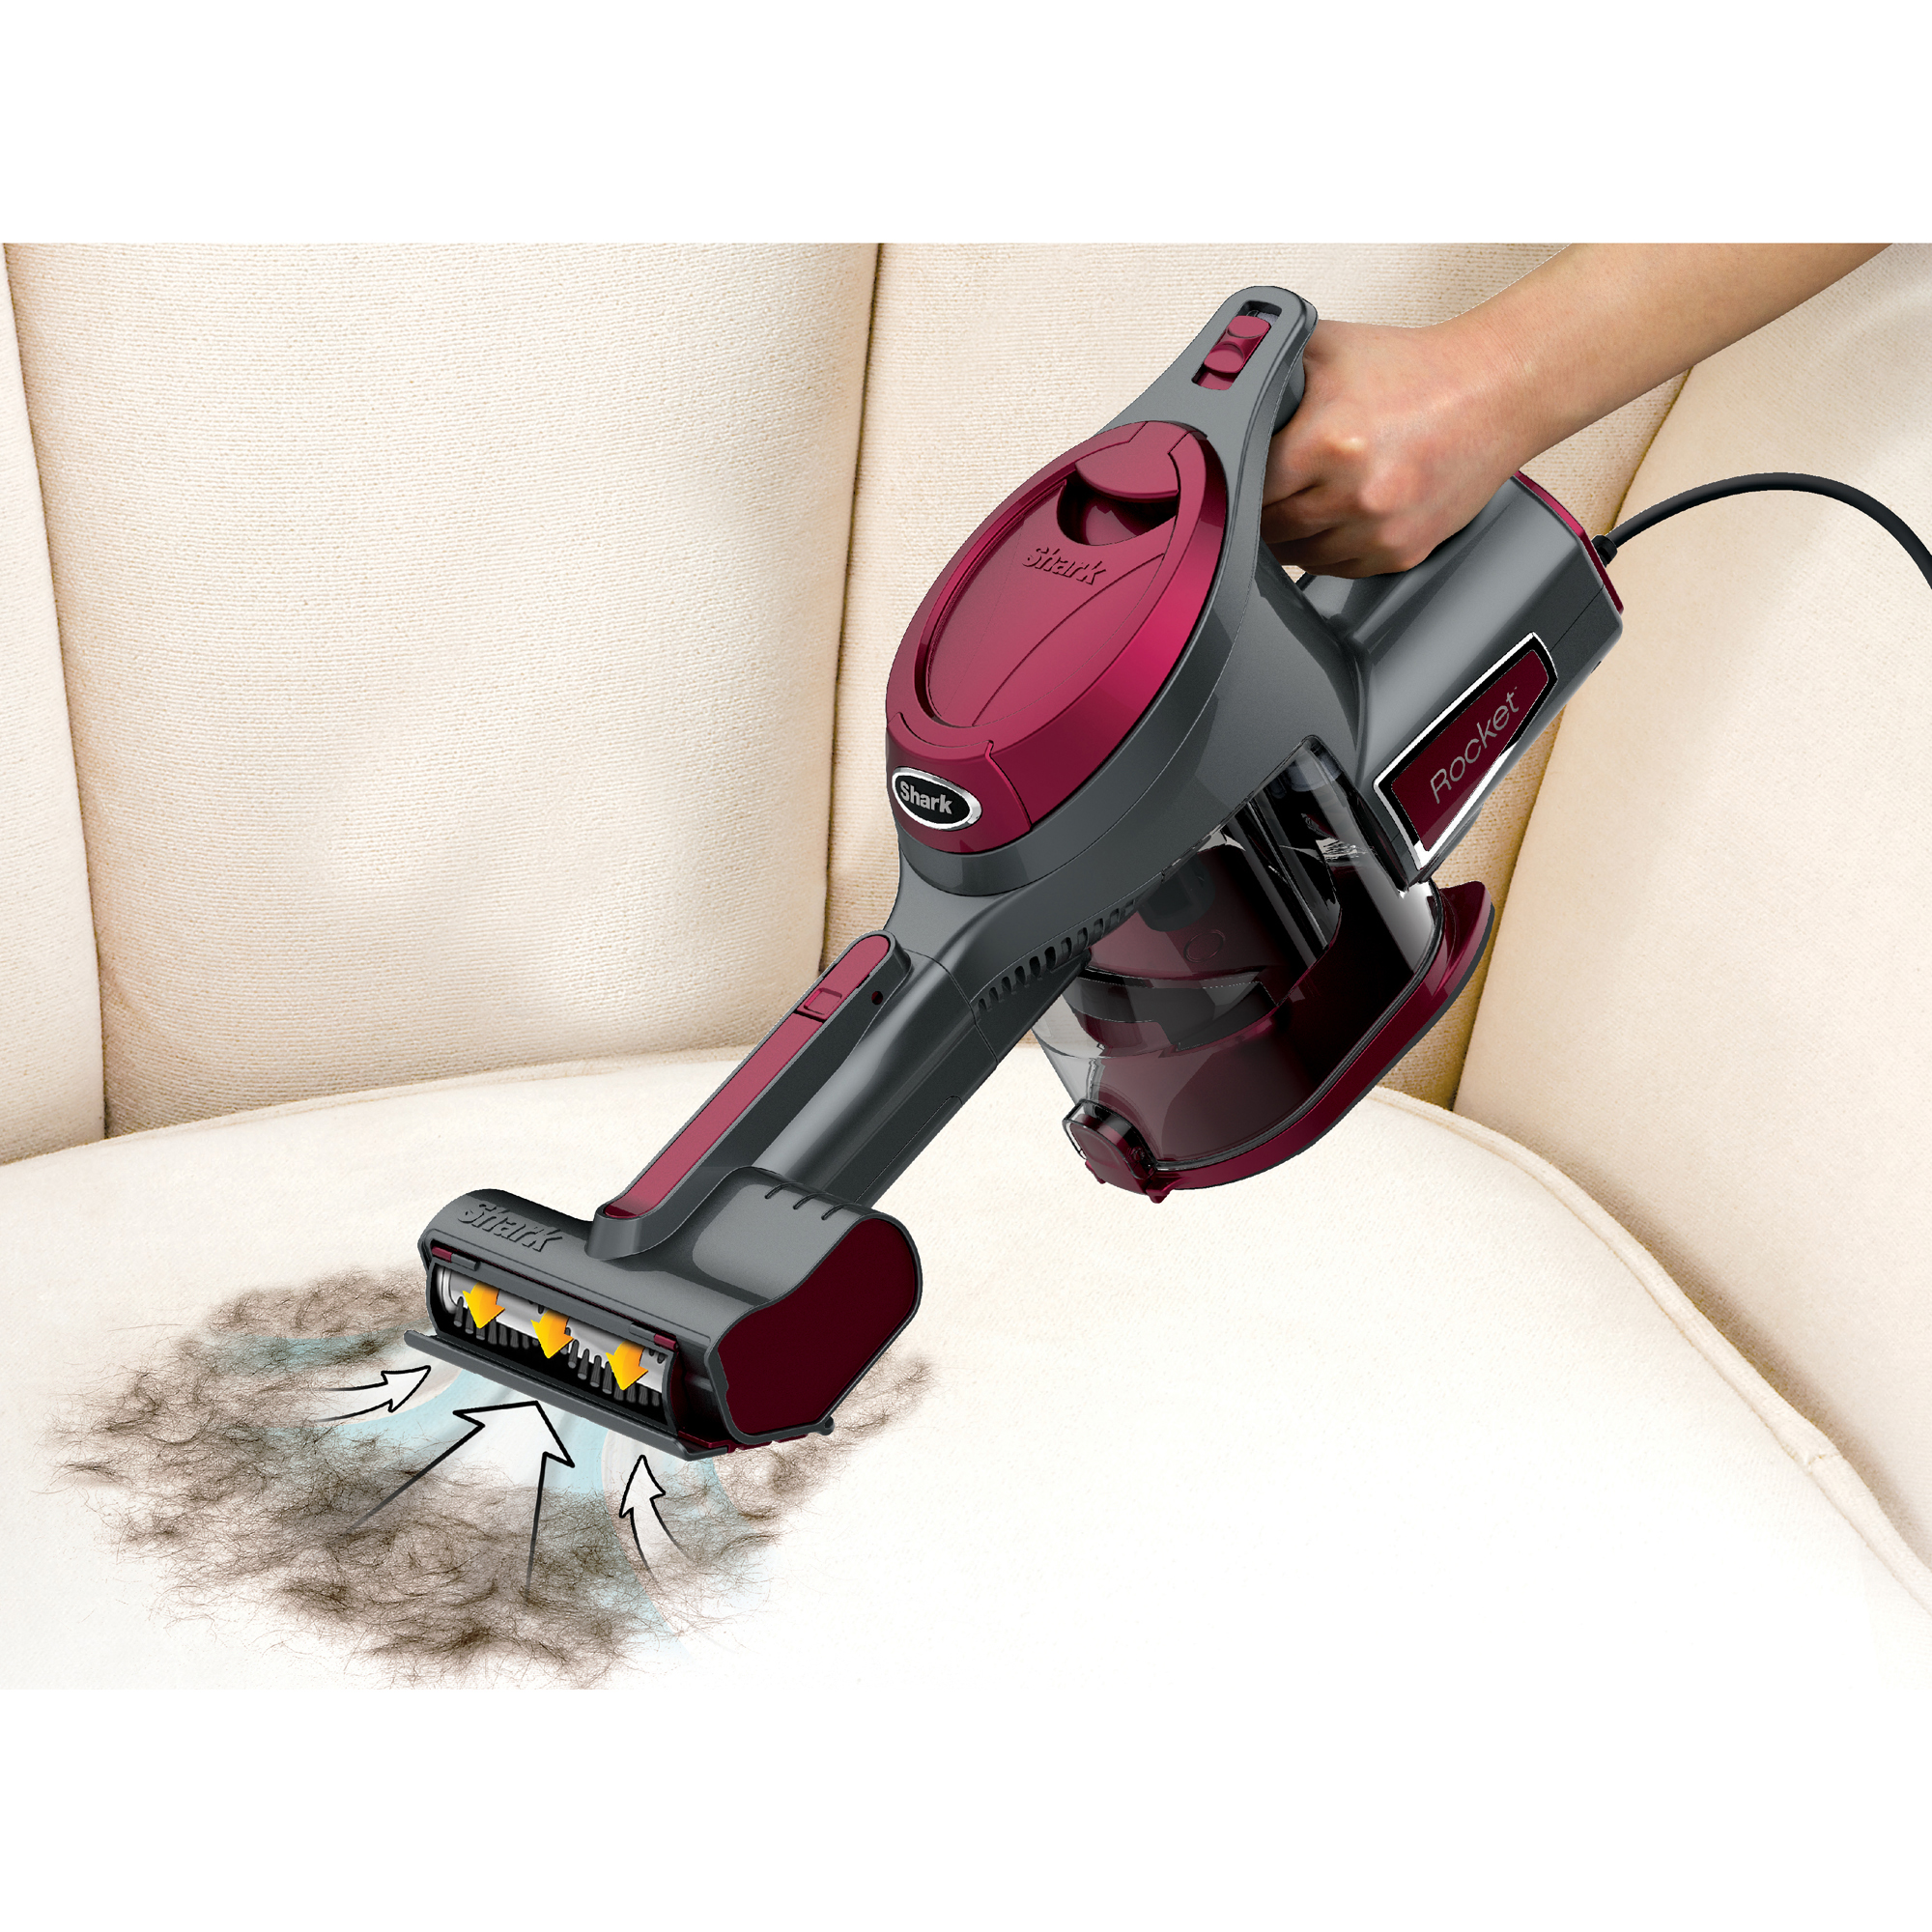 What is the best handheld vacuum cleaner reference com - What Is The Best Handheld Vacuum Cleaner Reference Com 3